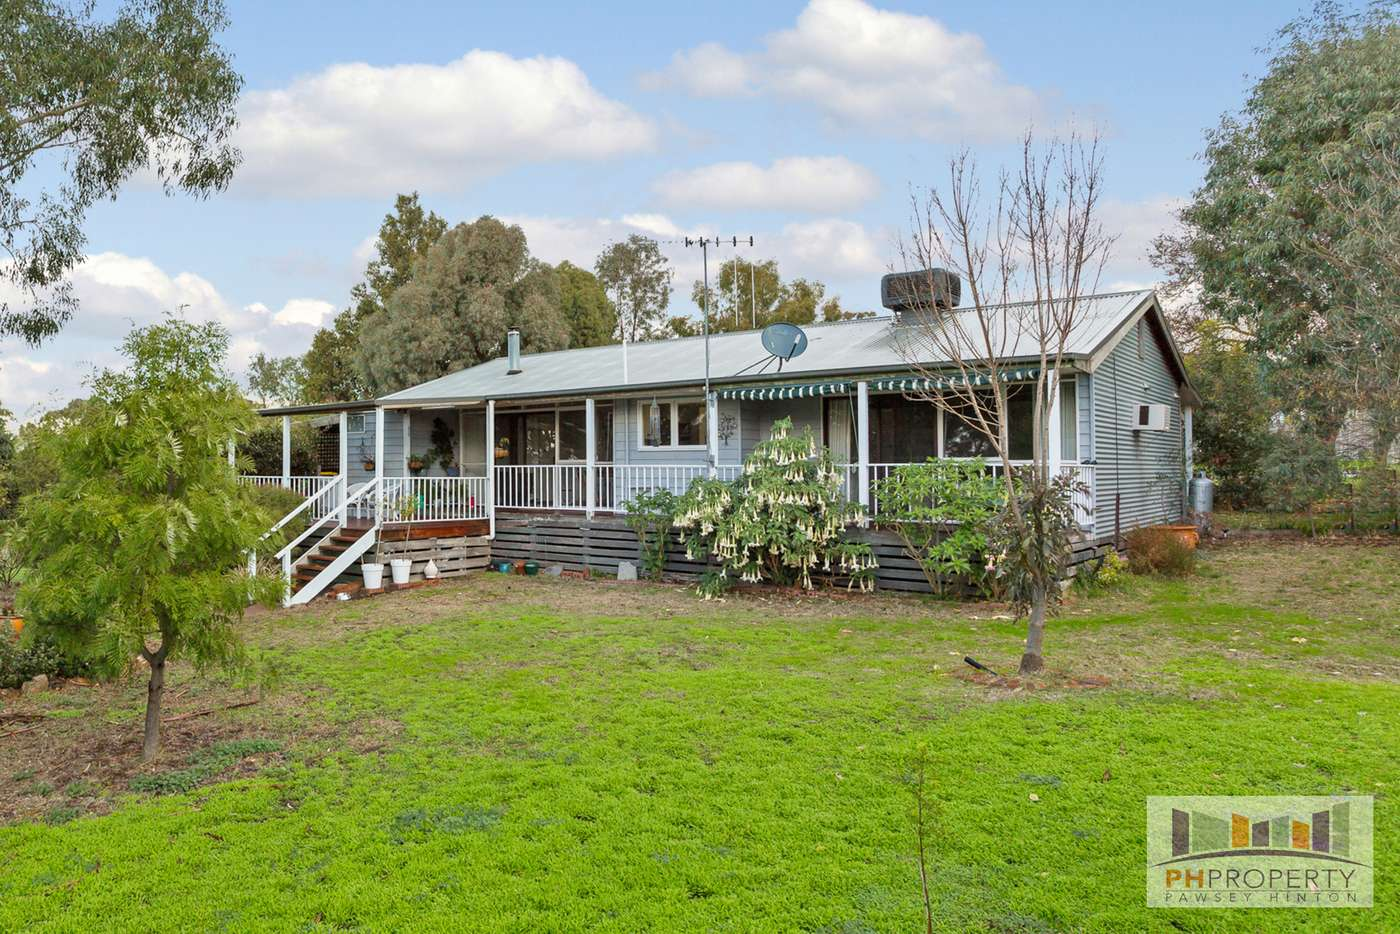 Main view of Homely house listing, 1 Popeks Road, Maldon VIC 3463